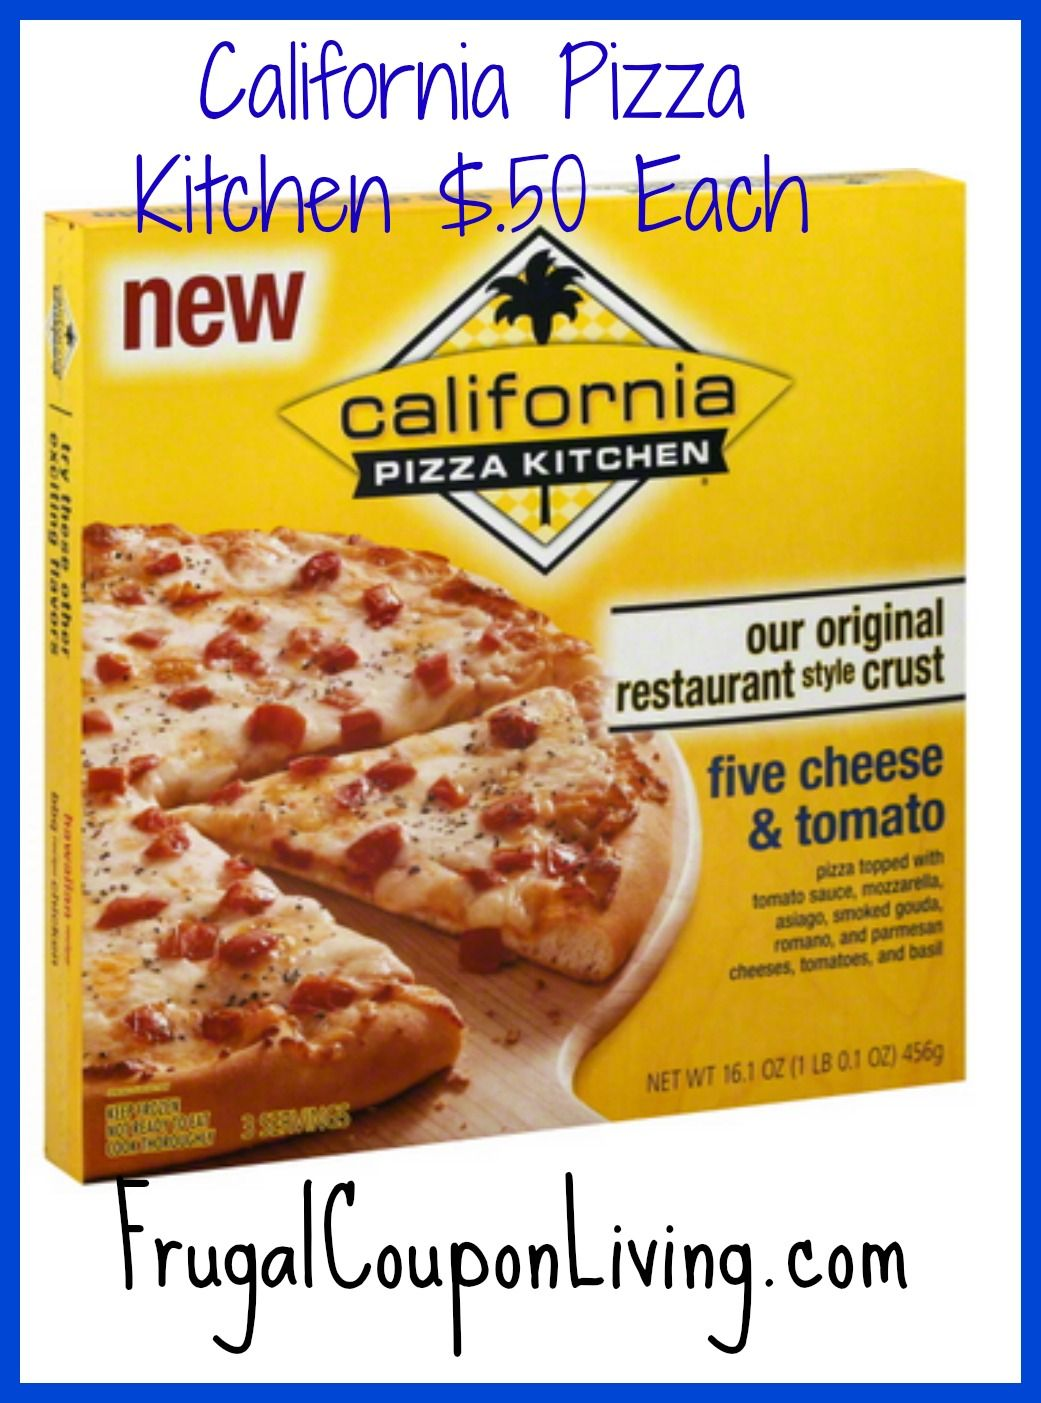 California Pizza Kitchen Frozen Pizza $.50 From $5.49 #target #pizza  #calforniapizza